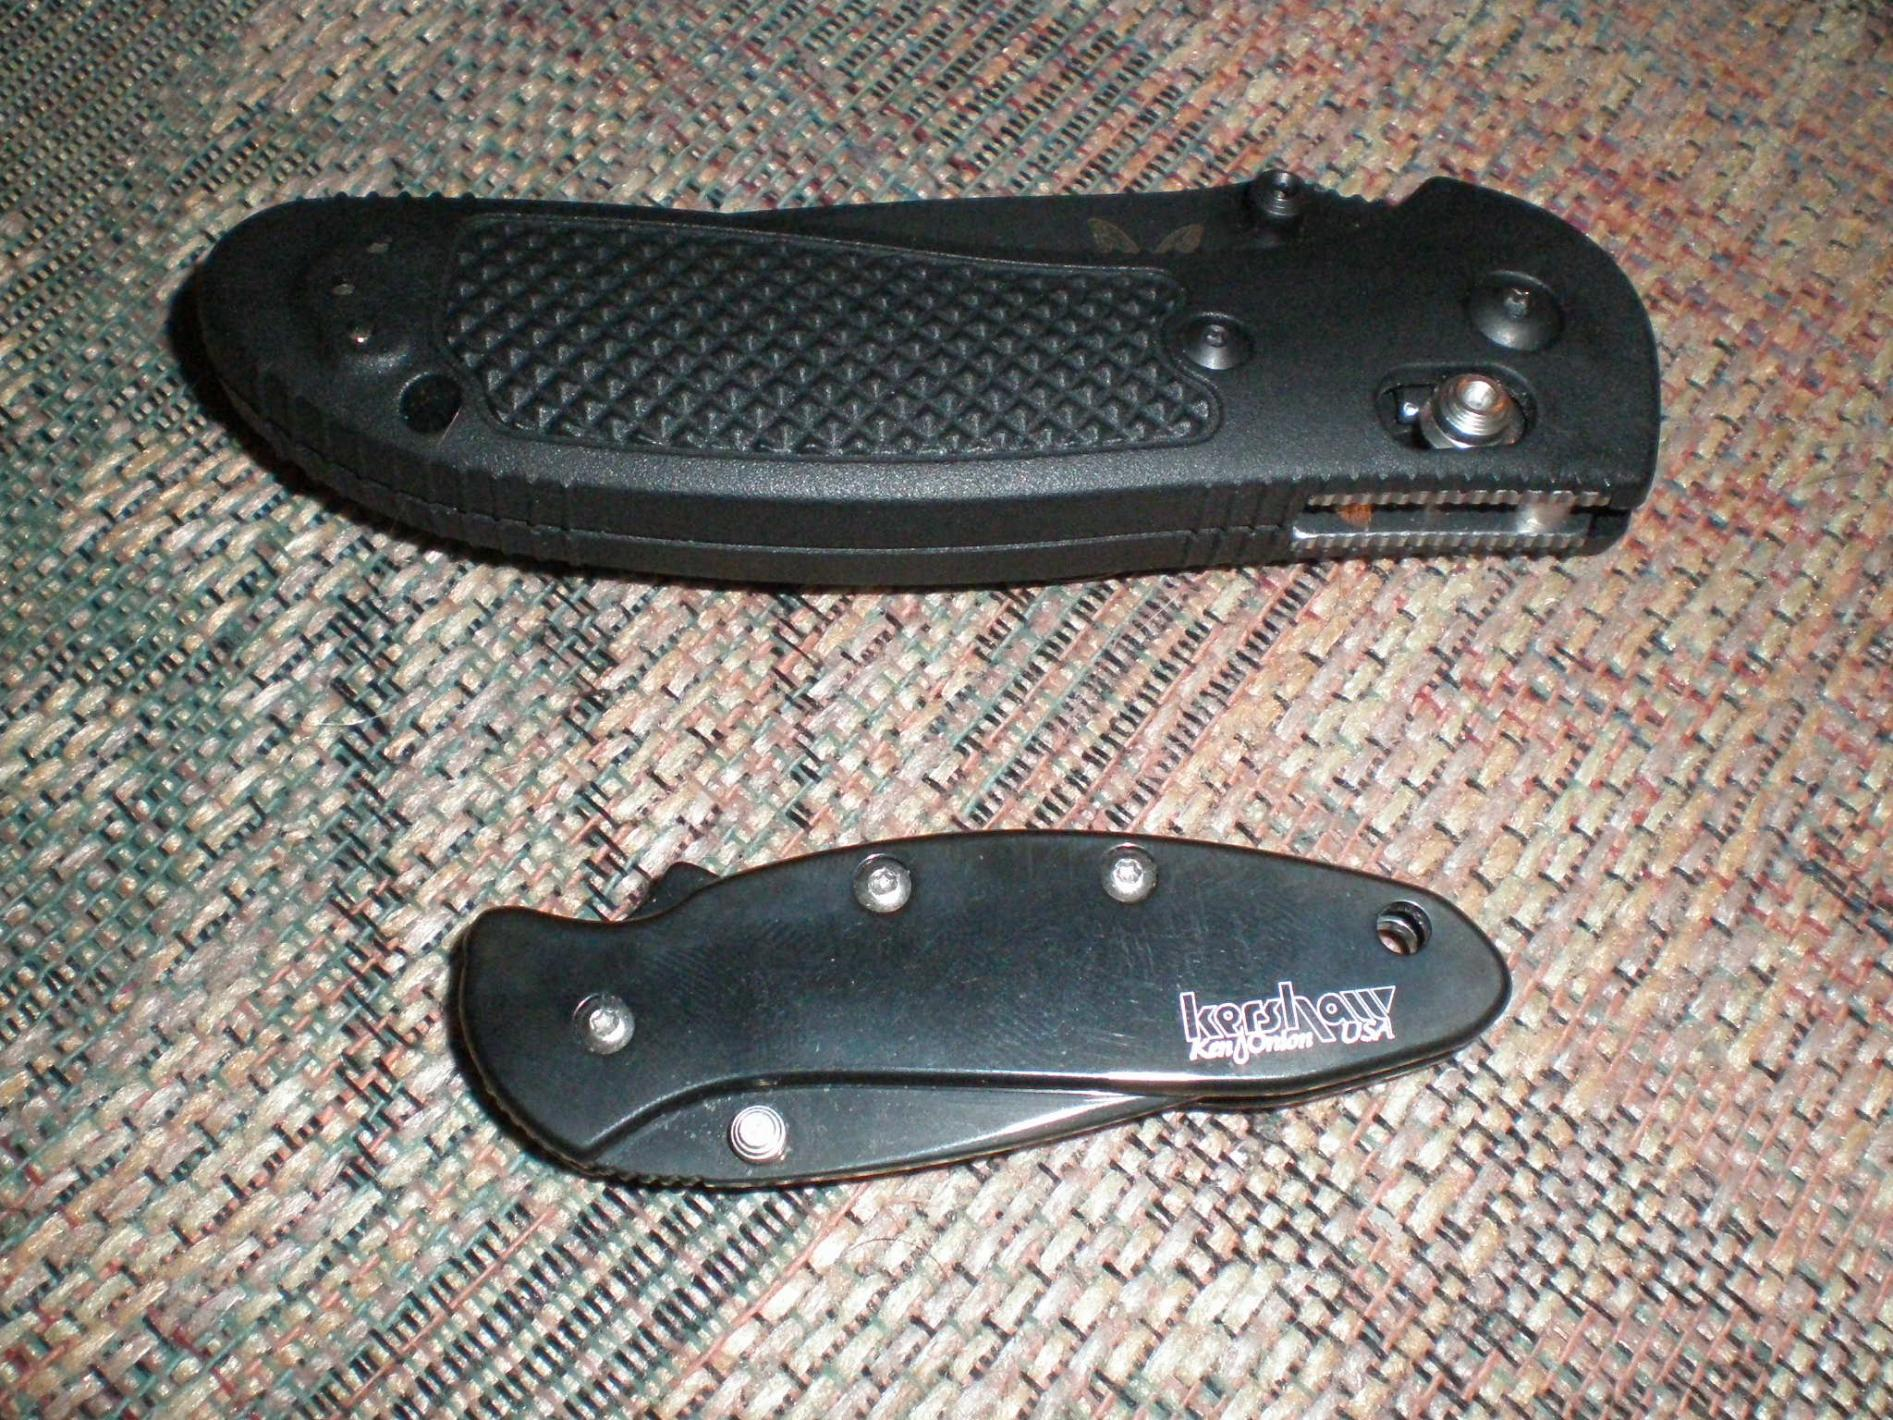 Let's See Your Knife Collection-pb090084.jpg